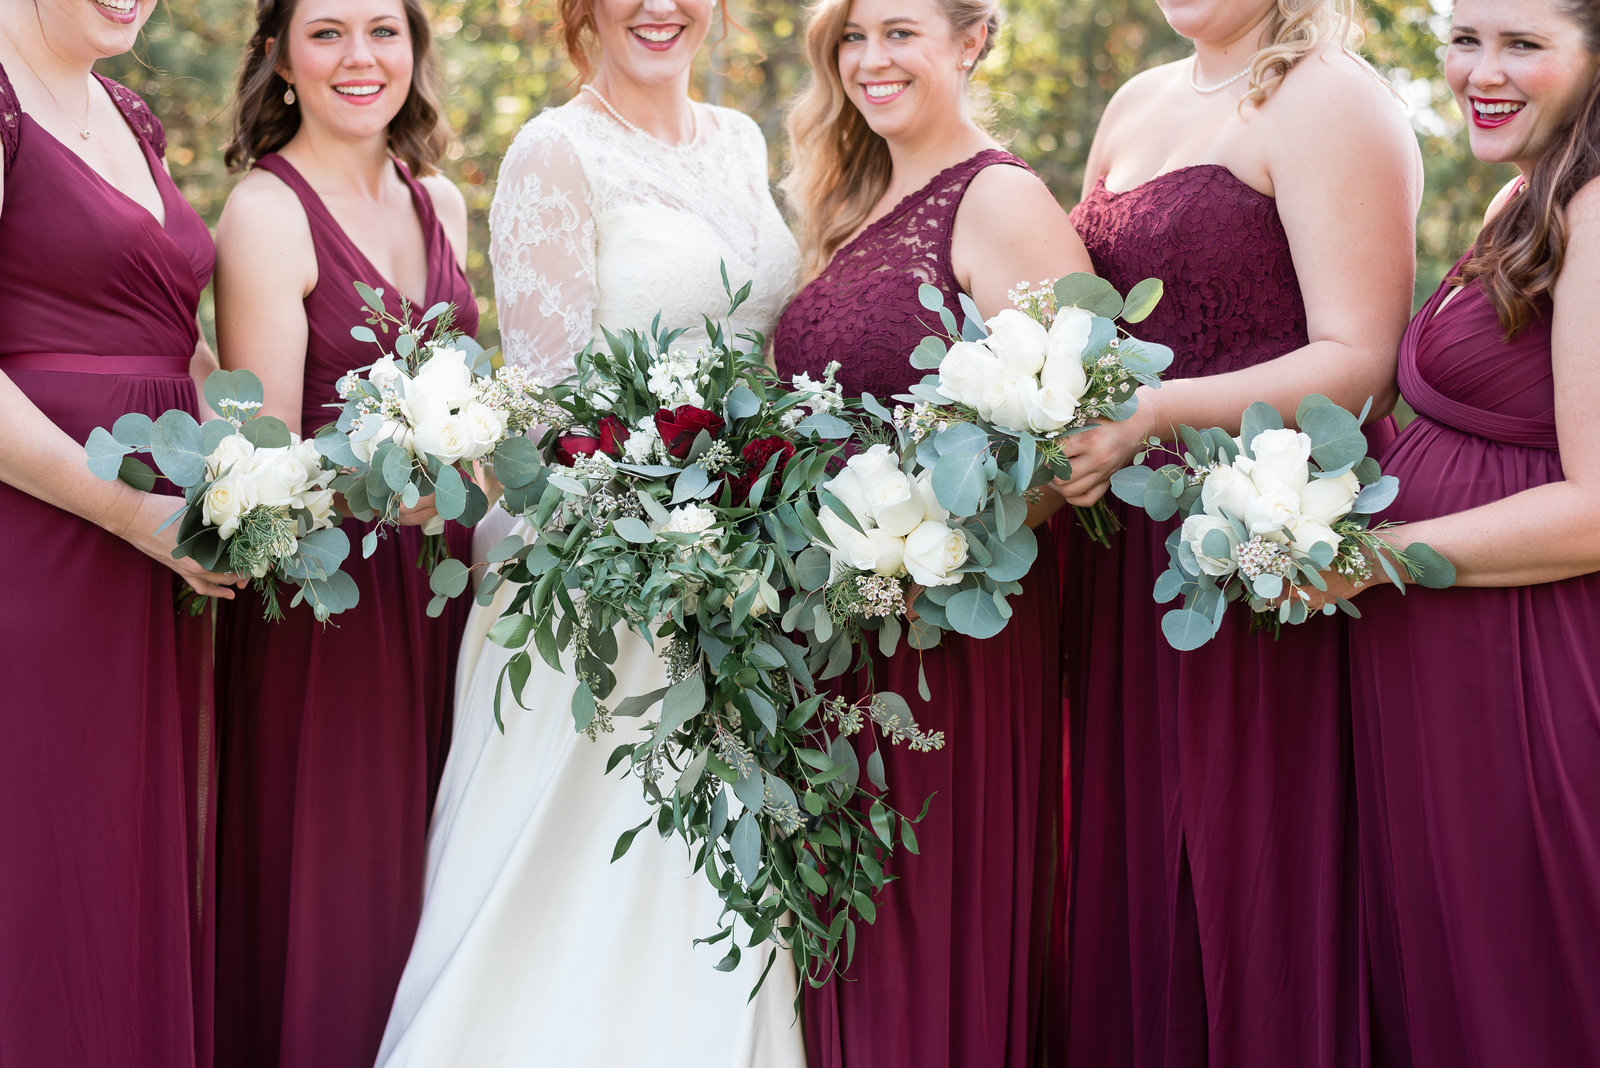 Emily-and-Allen-Highlands-Country-Club-Wedding-Melissa-Desjardins-Photography-4